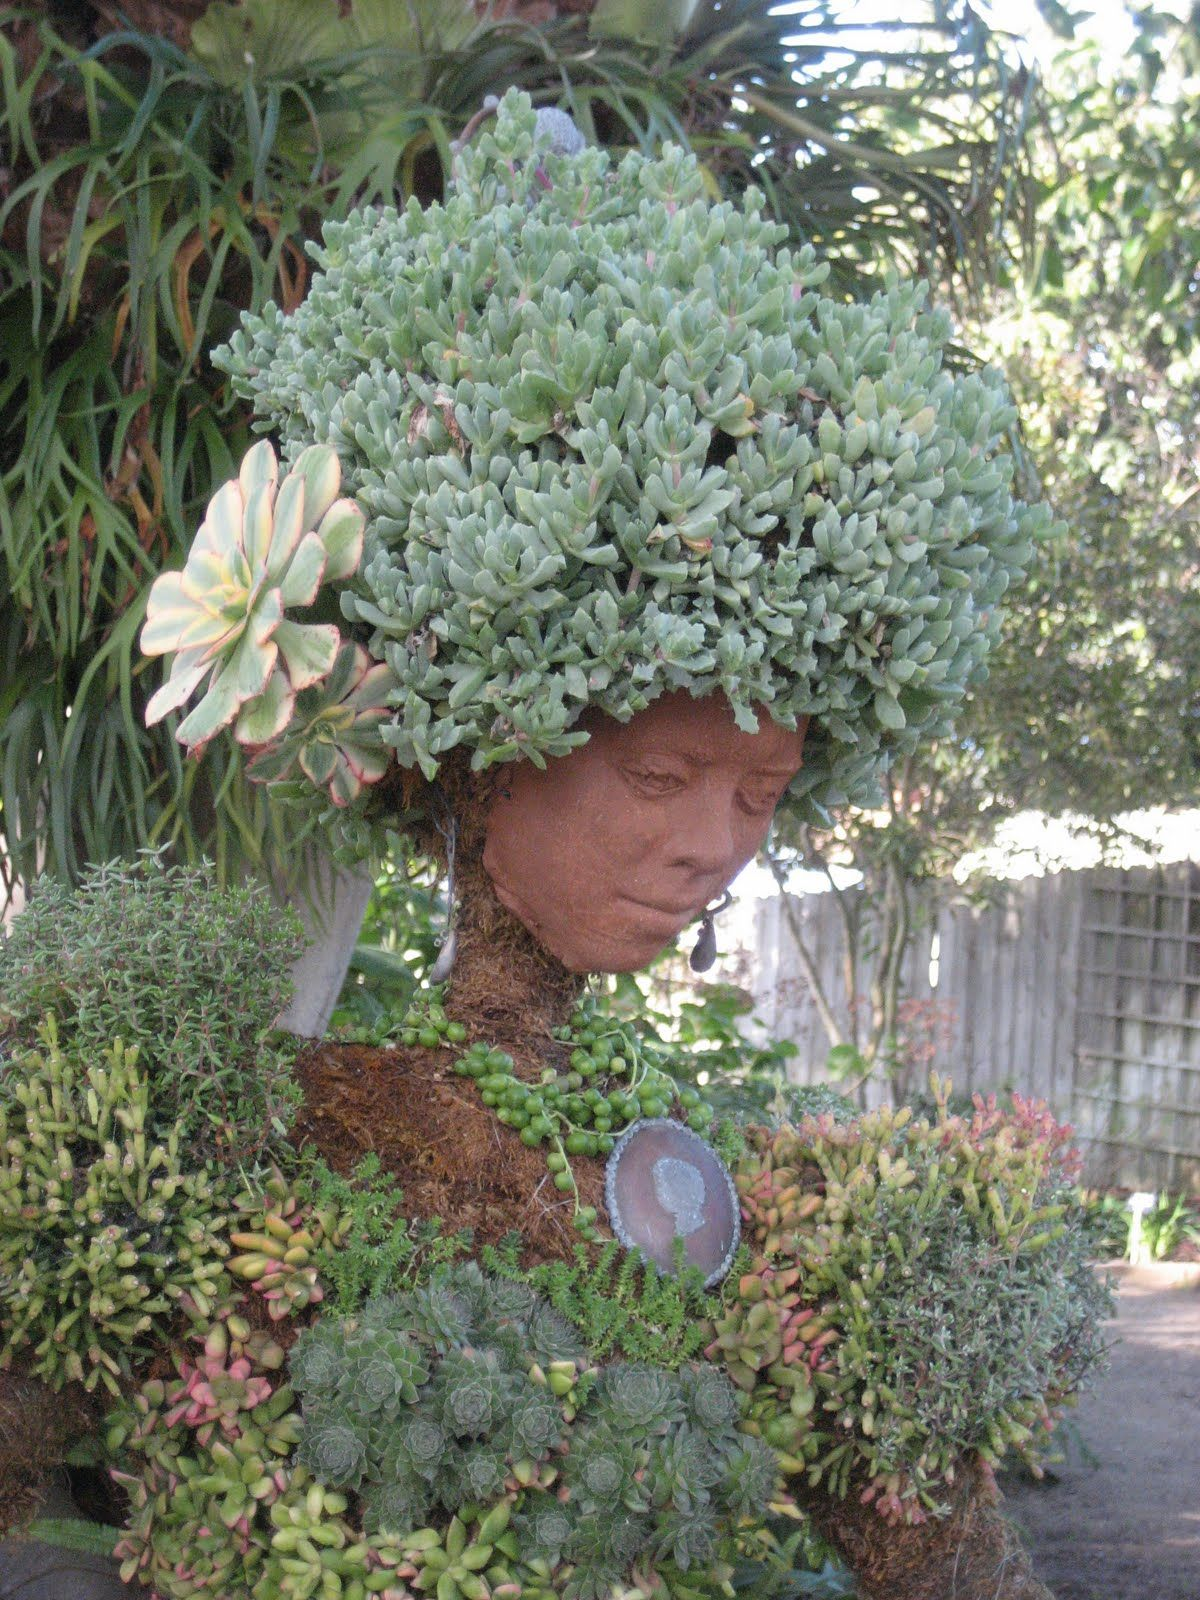 Art For The Garden: I Want This To Be A Terra Cotta Head Shaped Planter. With